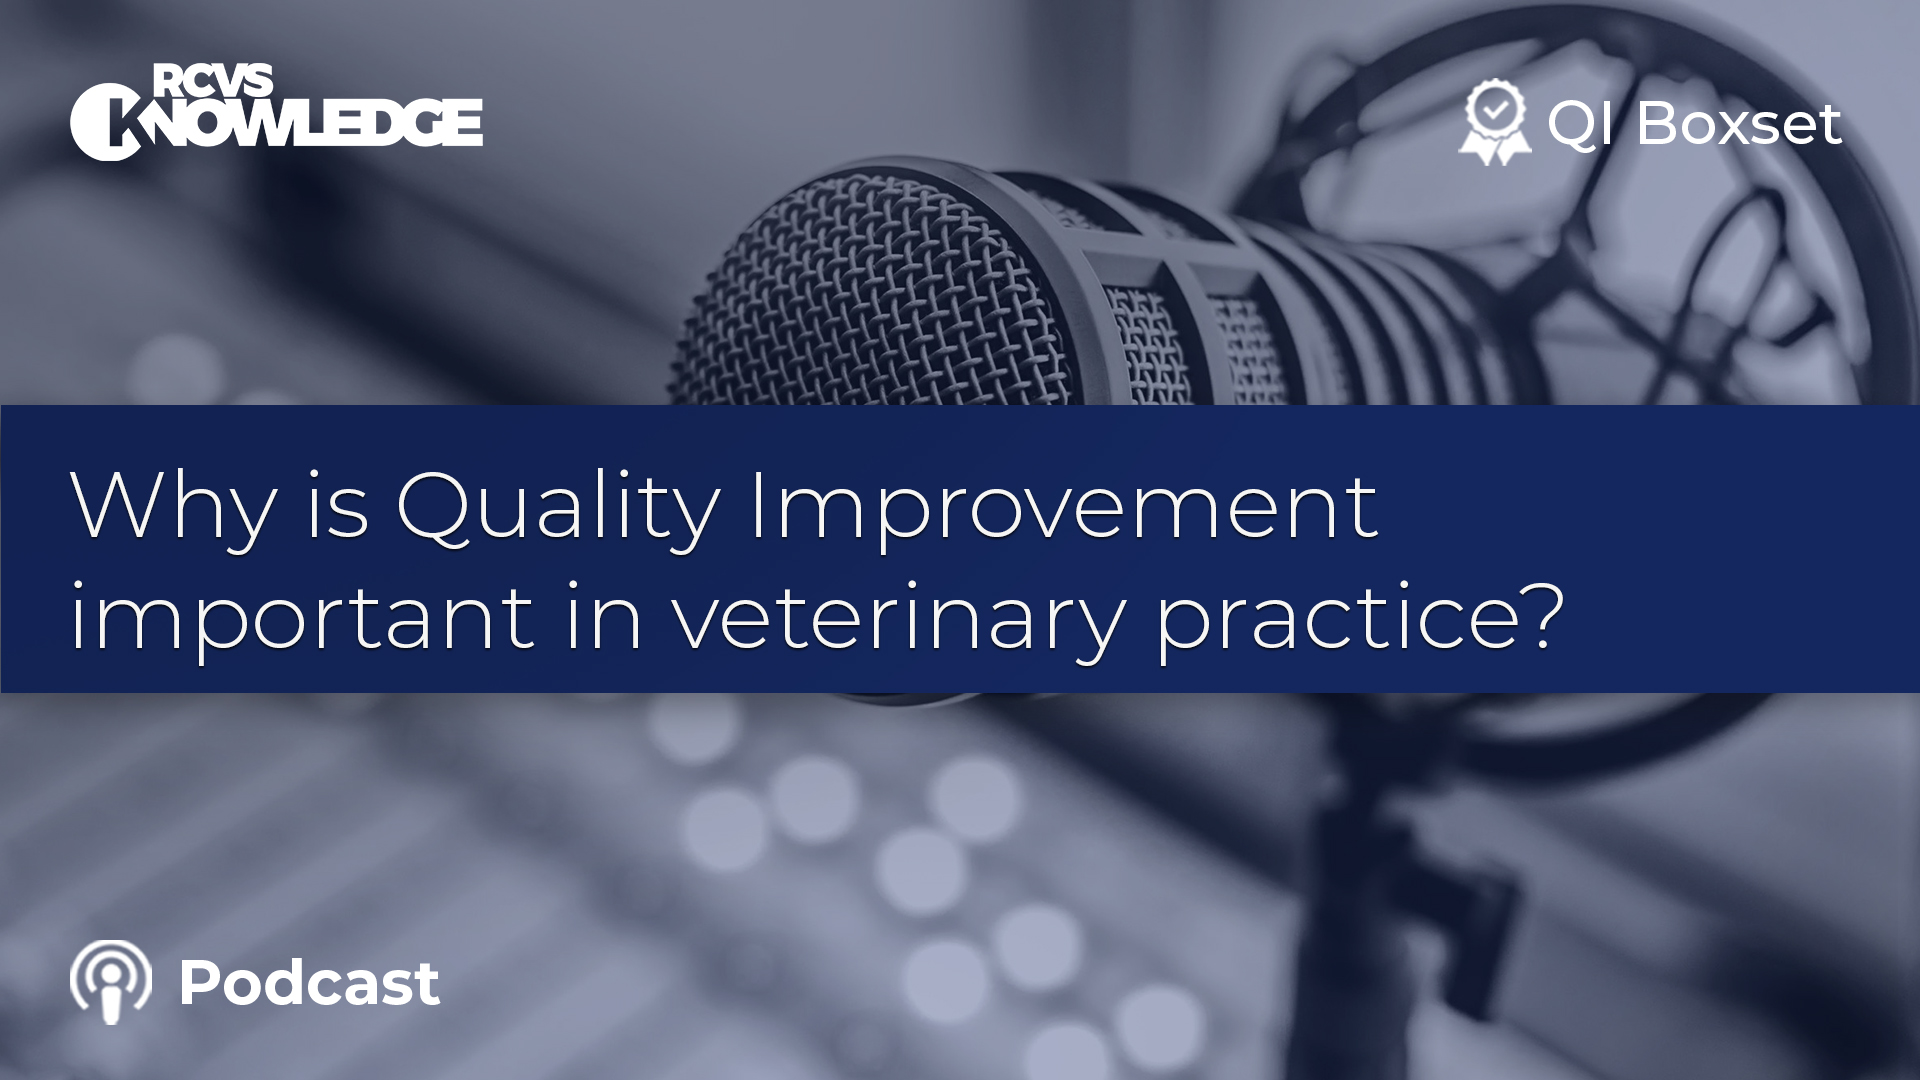 Why is Quality Improvement important in veterinary practice?